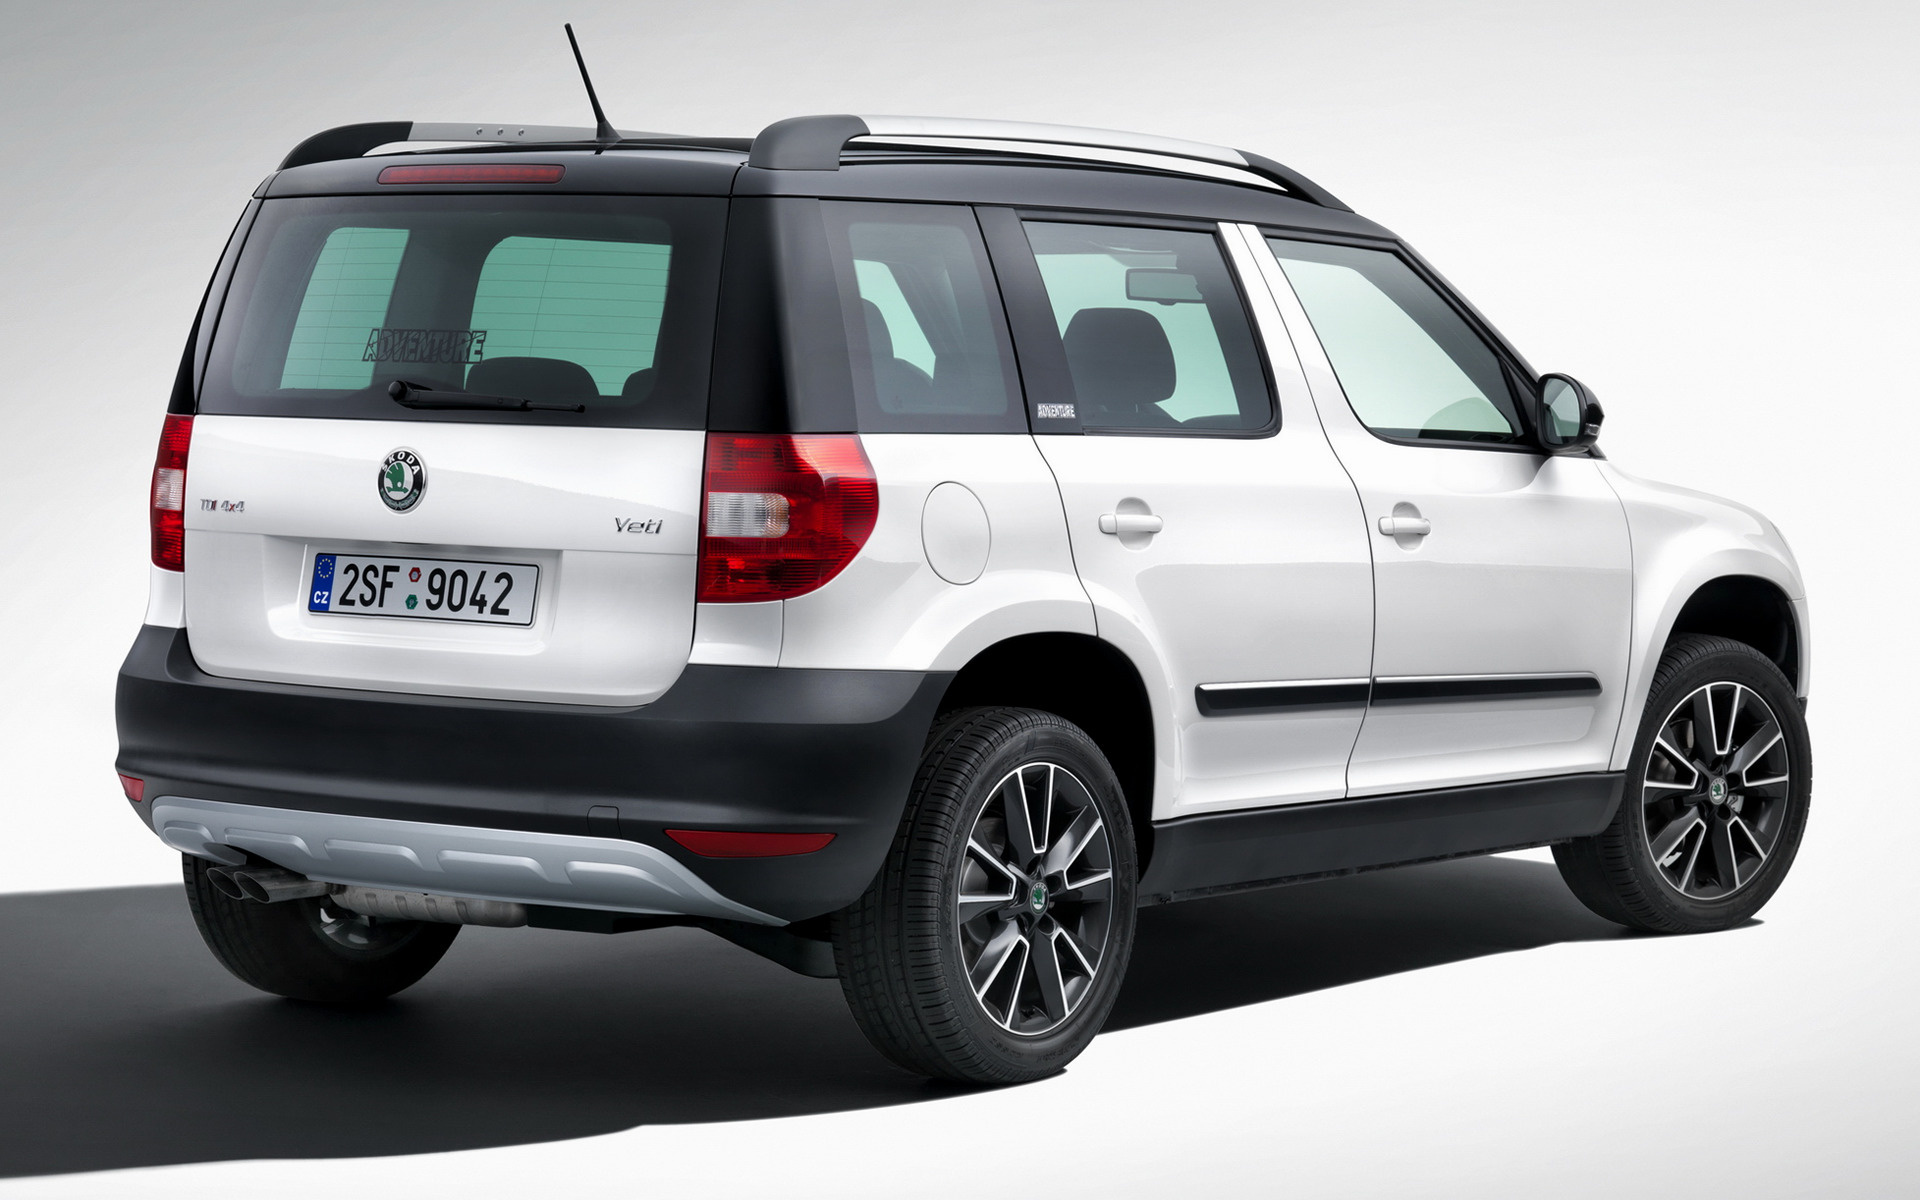 2013 Skoda Yeti Adventure Wallpapers And Hd Images Car Pixel